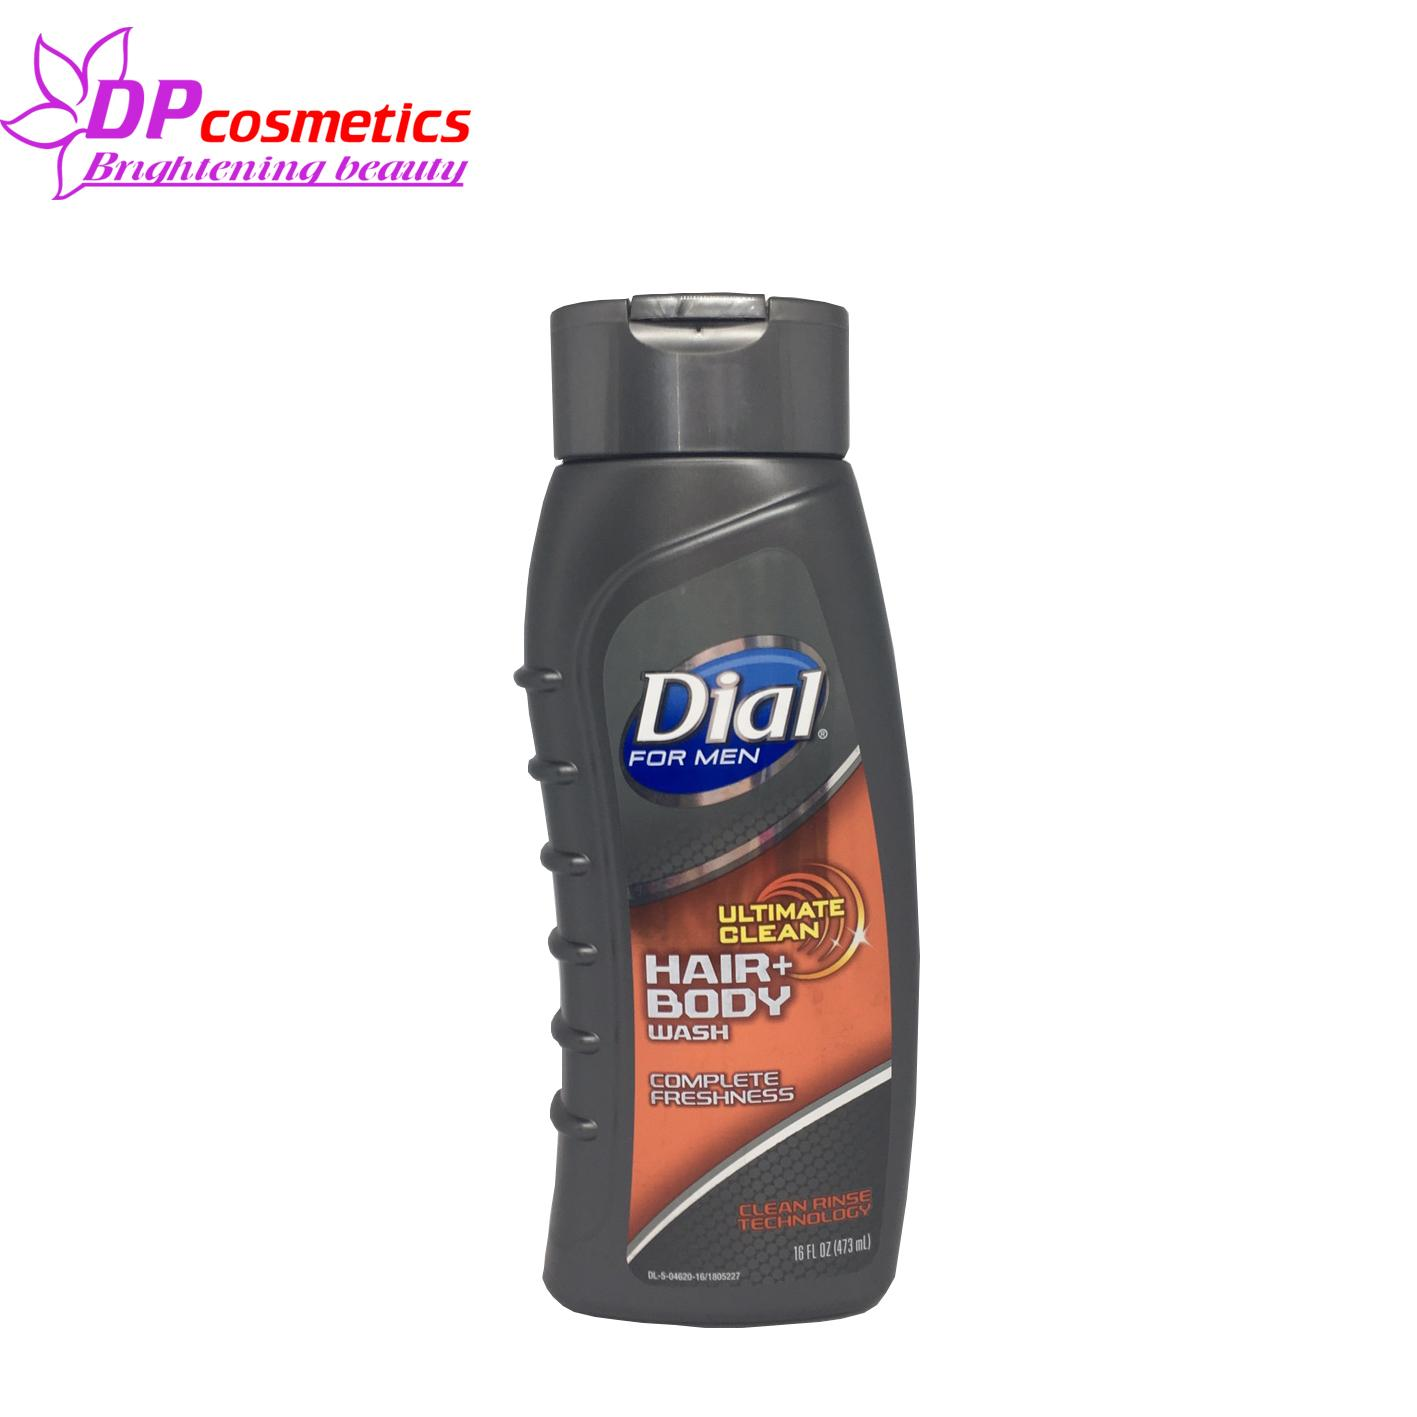 Tắm Gội Dial For Men Ultimate Clean Hair & Body Wash